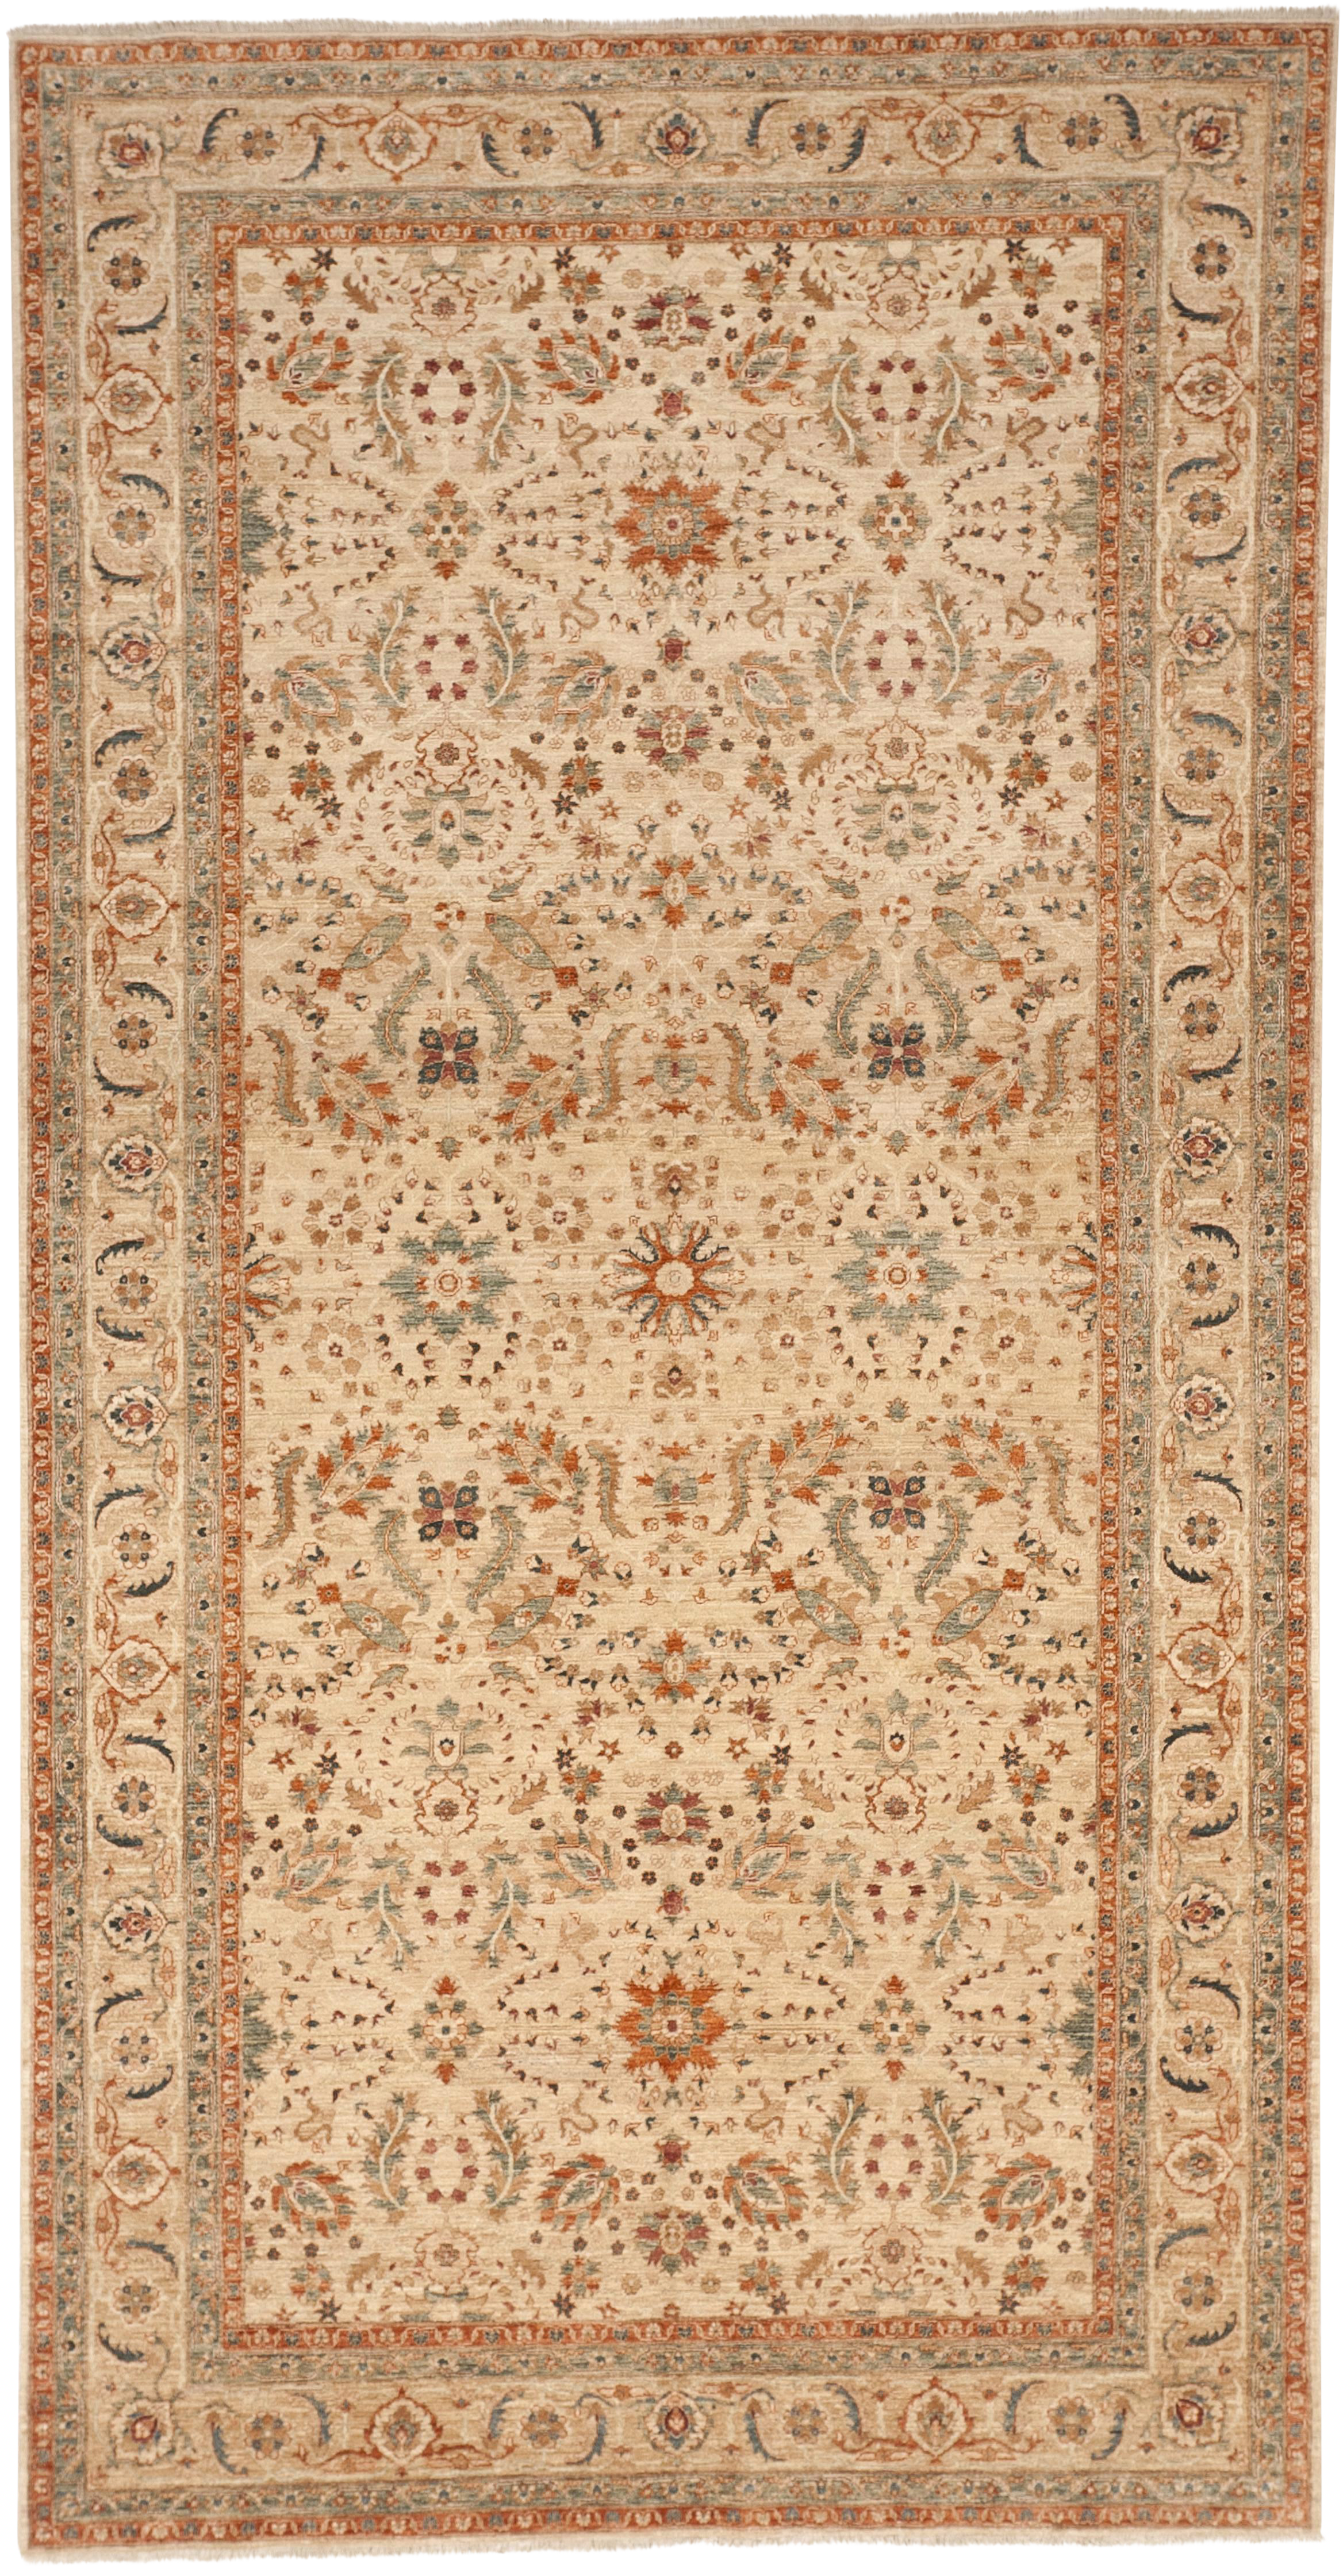 Vartian Teppiche Vartian Carpets In Love With Artistic Rug Design Blogtour